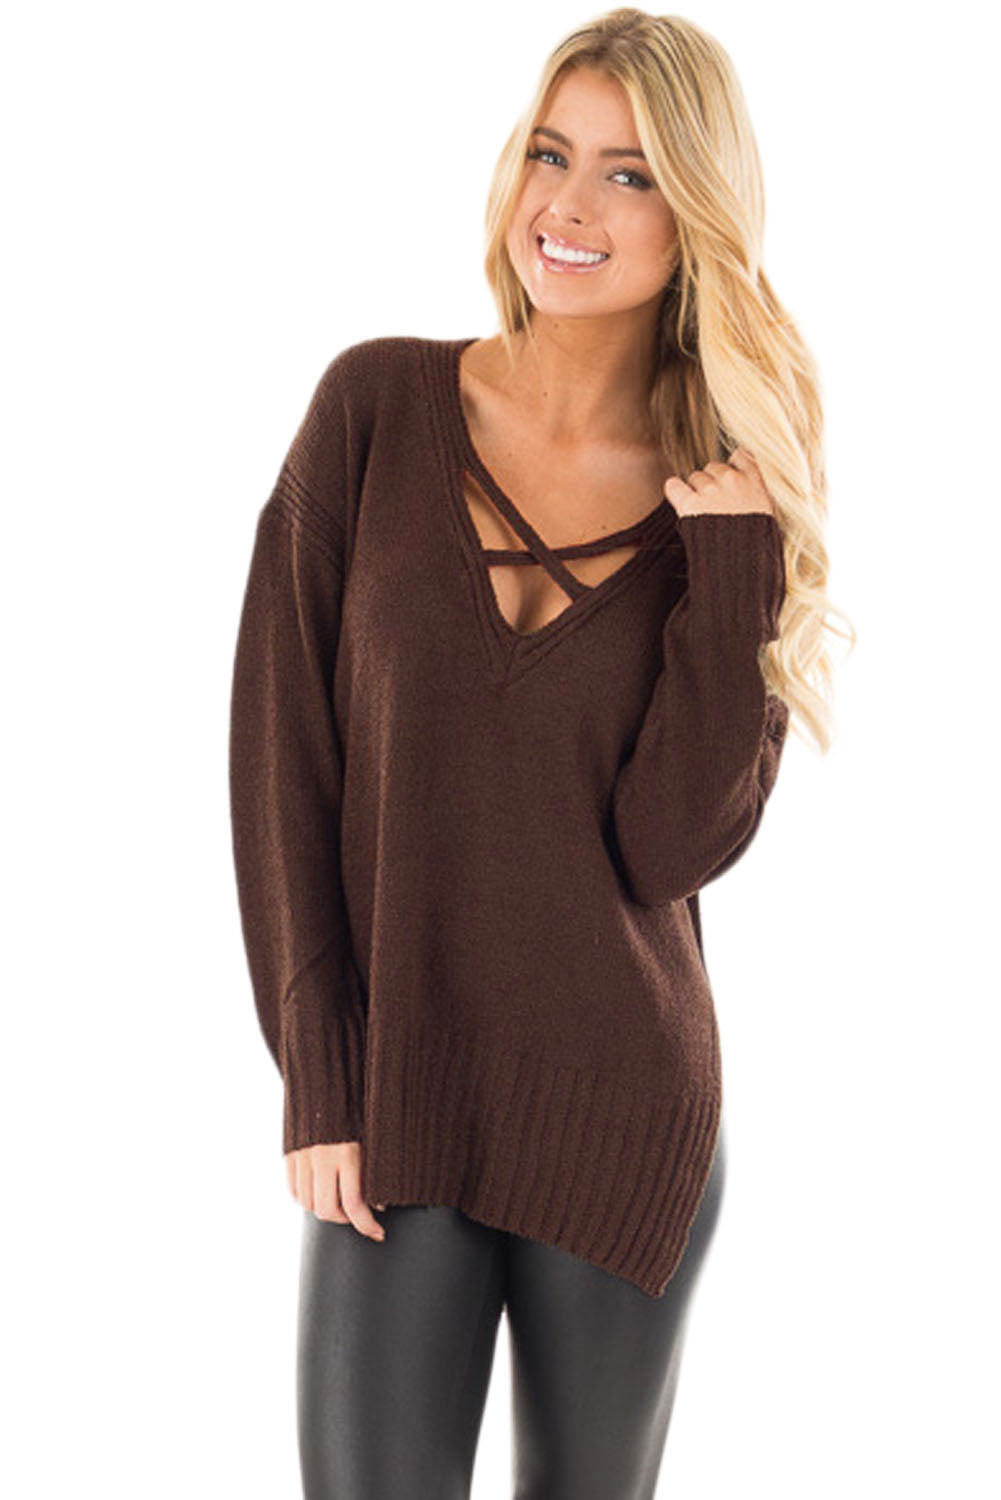 Chicloth Brown Deep V Neck Crisscross Knit Sweater - M / Brown